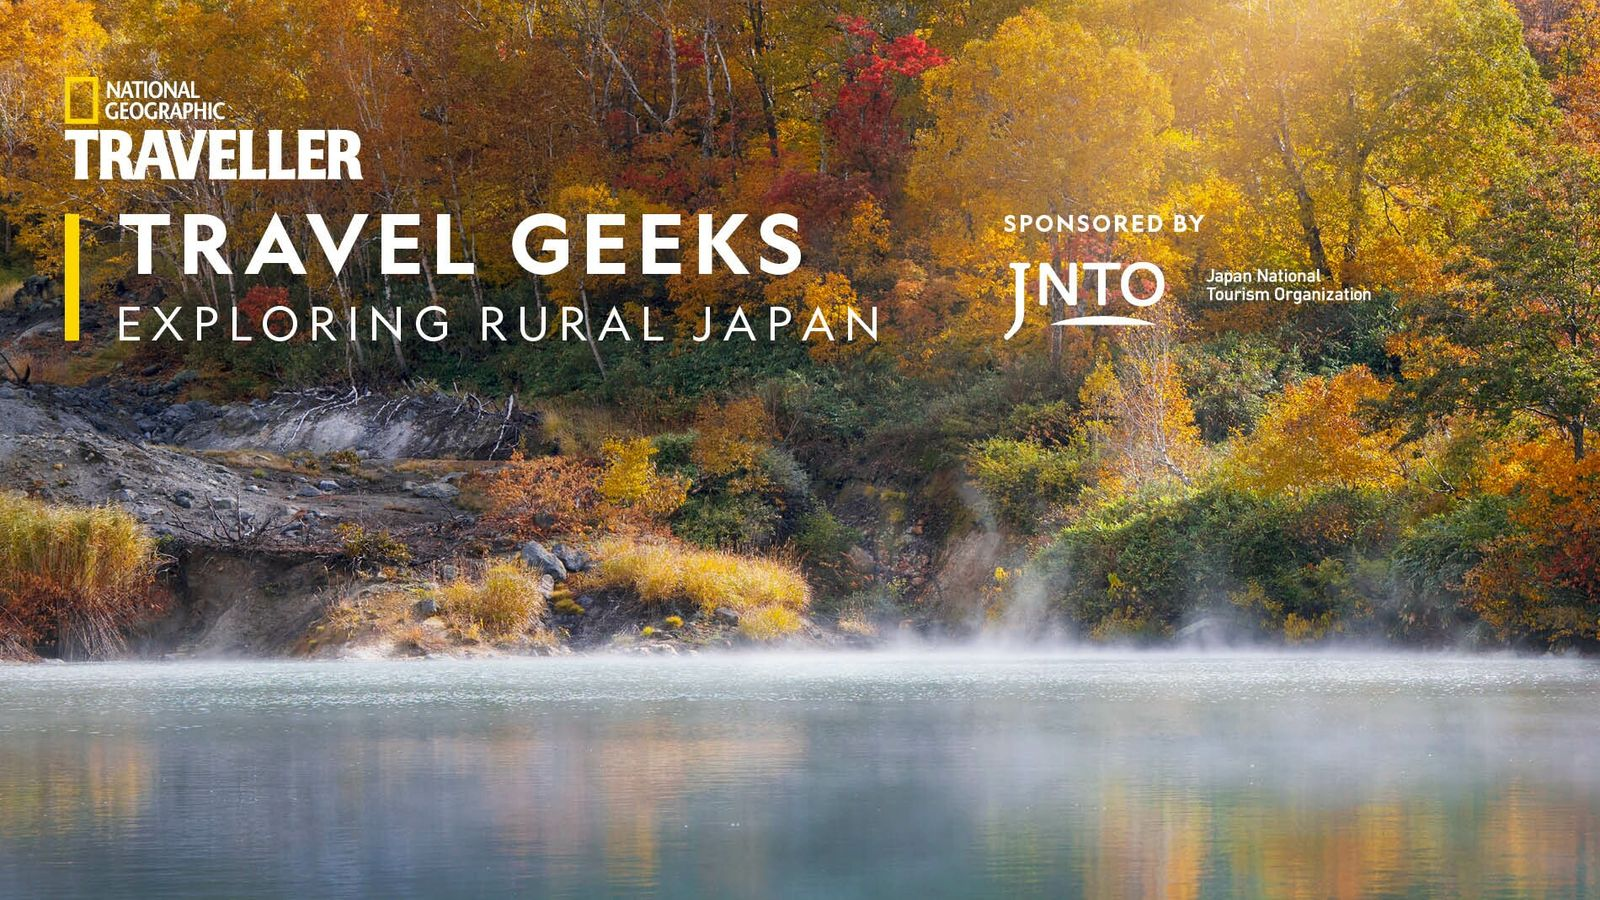 At our next online Travel Geeks event, we'll be discussing the adventures, culture, food and history ...